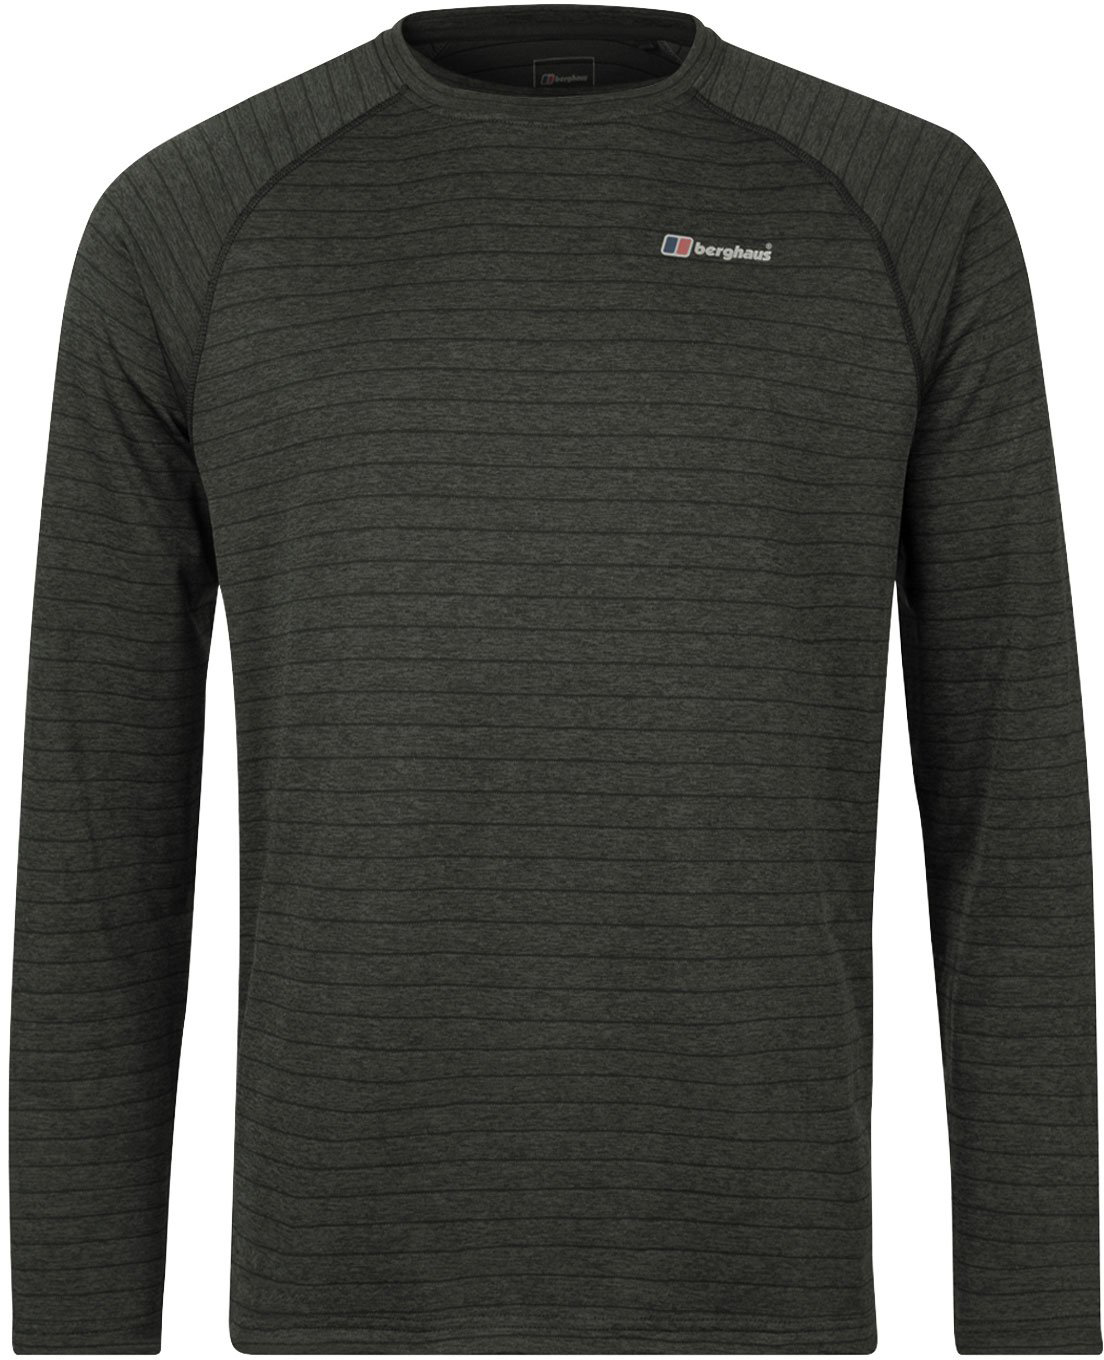 Berghaus Thermal Tech Tee LS Crew | Jerseys